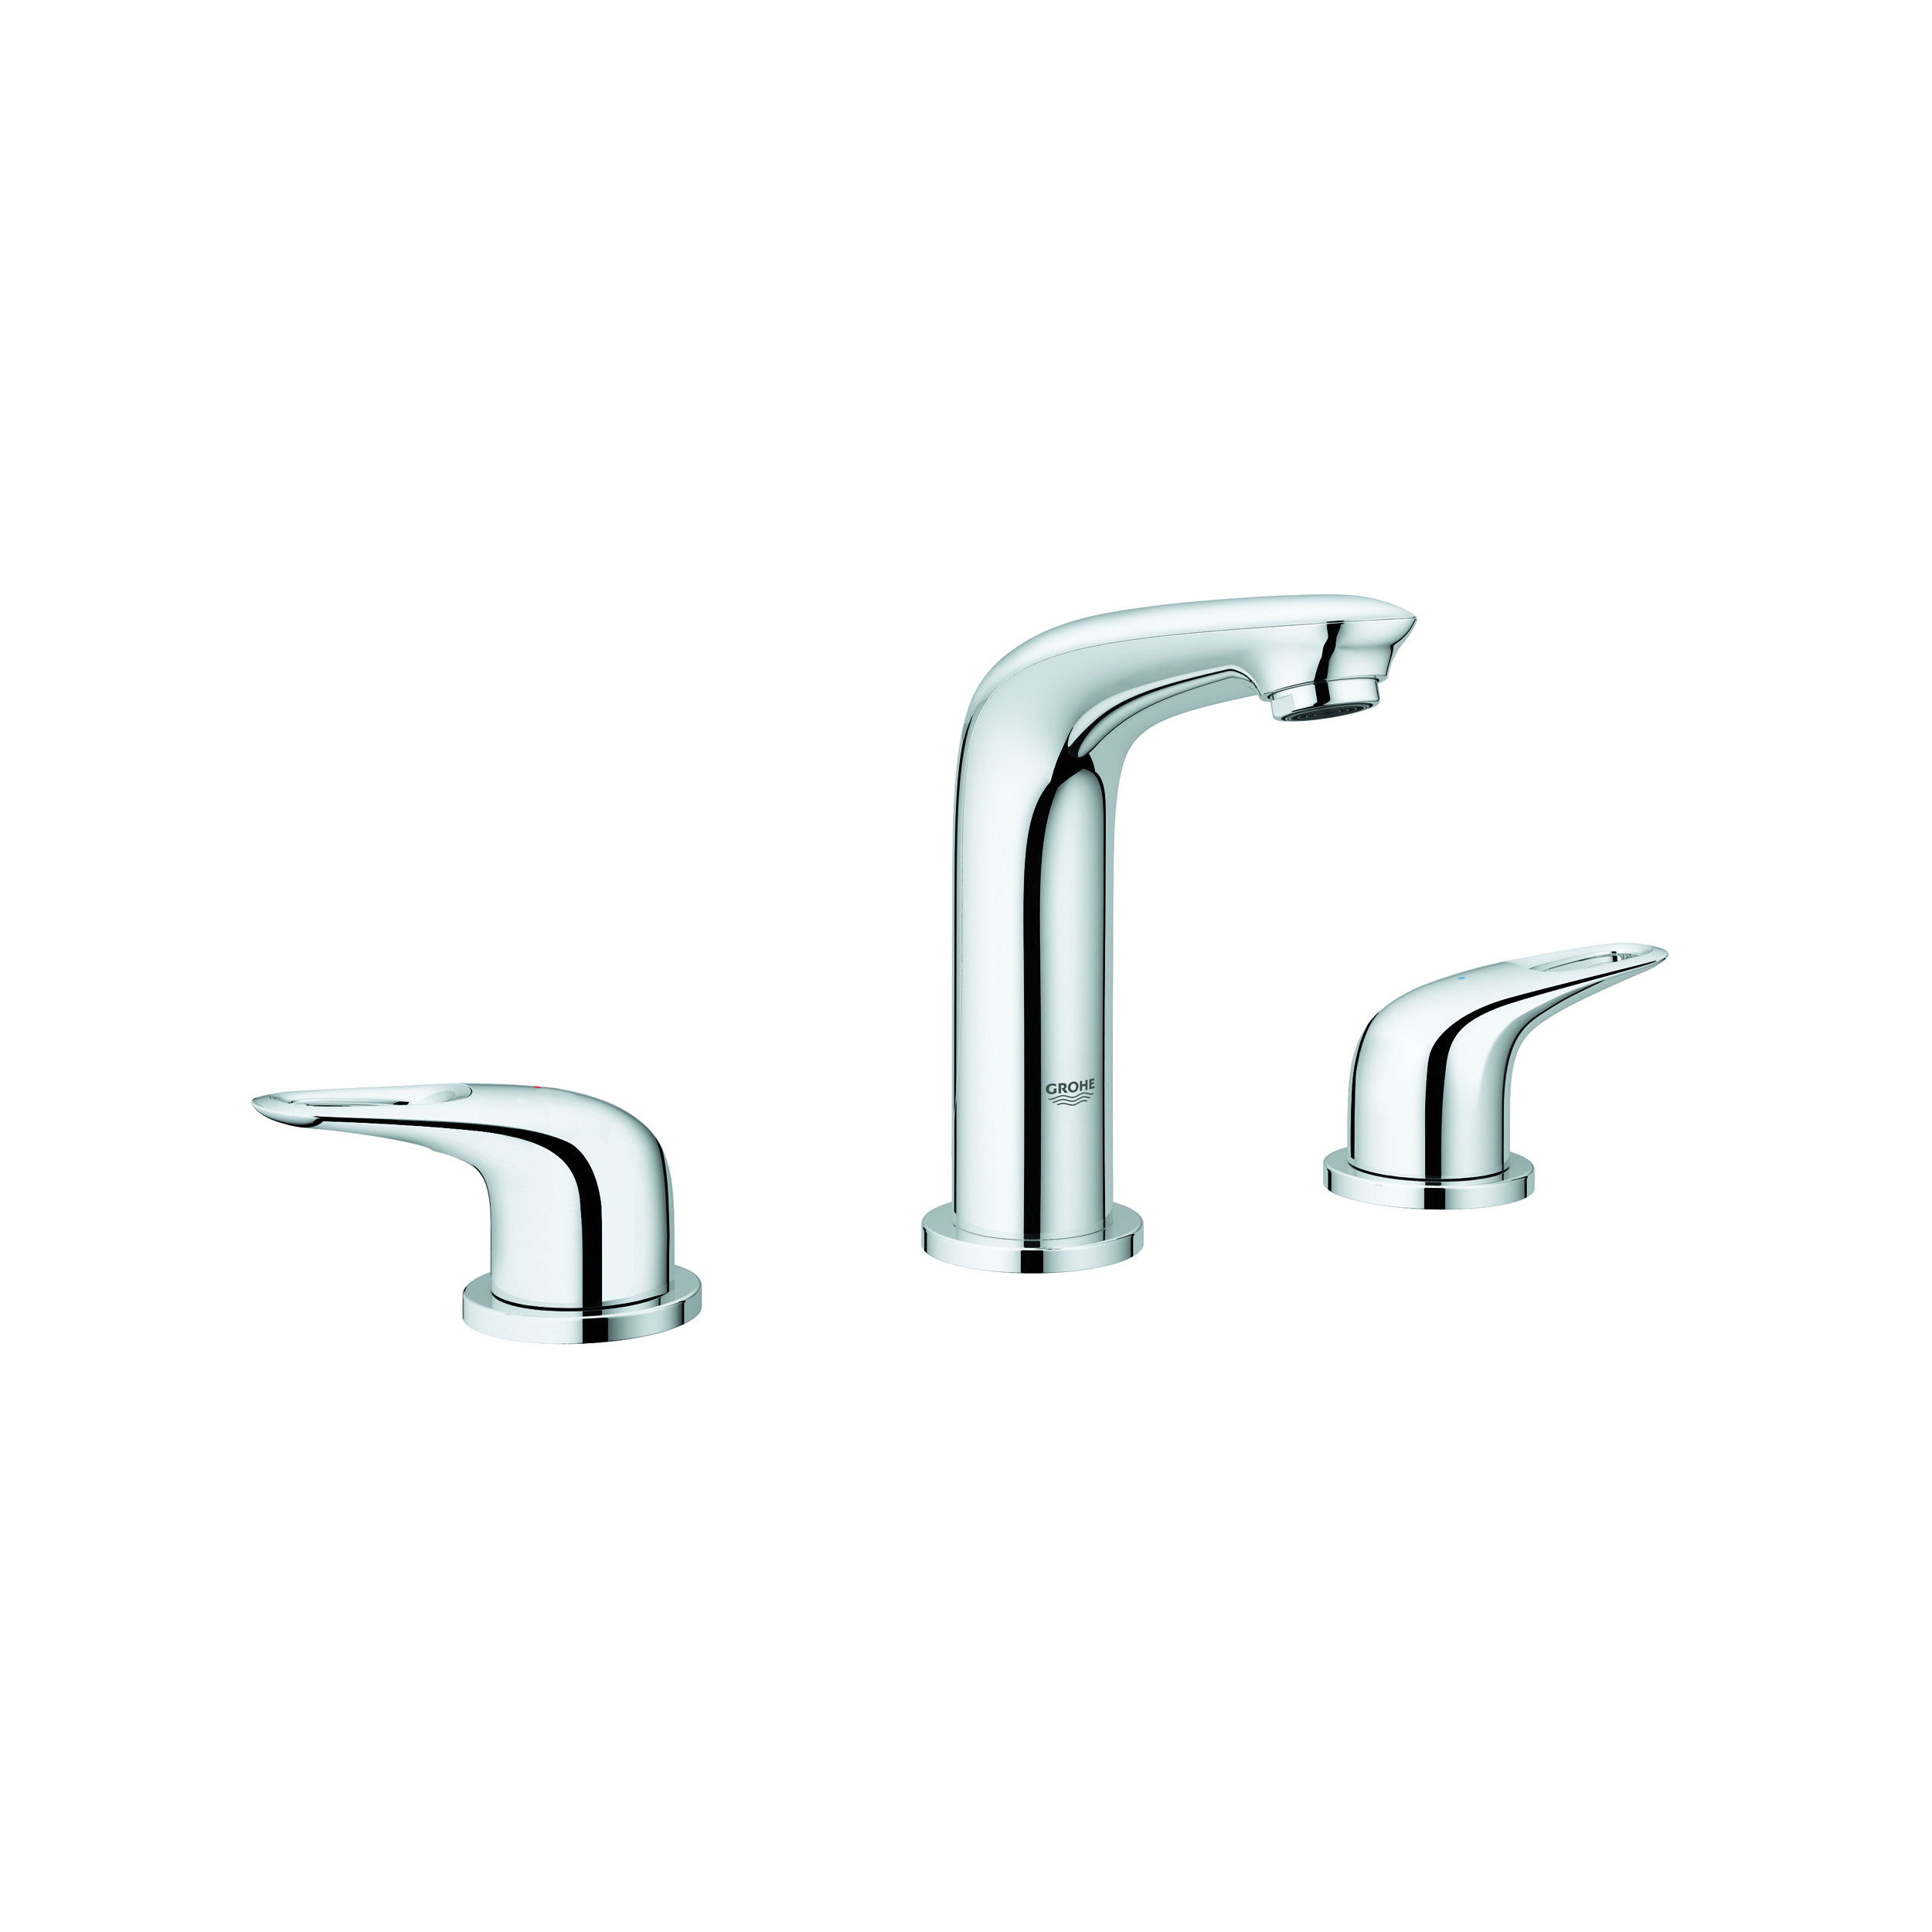 GROHE 20486003 Eurostyle™ Widespread Bathroom Basin Mixer, 1.2 gpm, 6-11/16 in H Spout, 8 in Center, StarLight® Chrome, 2 Handles, Pop-Up Drain, Import